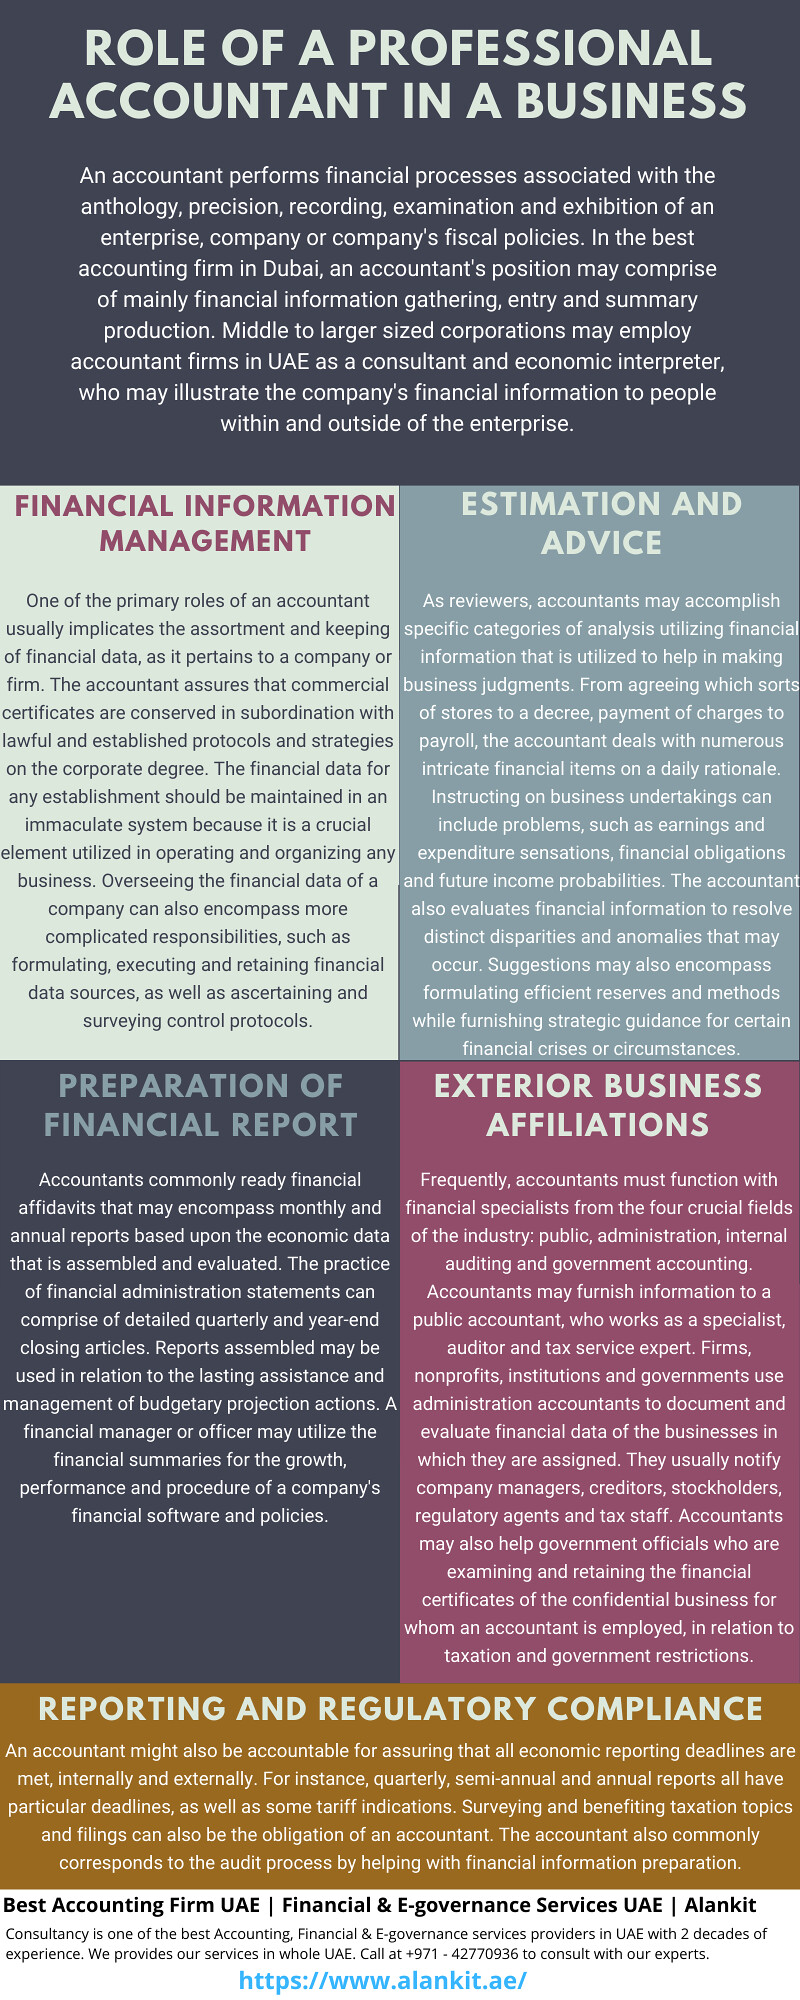 Role of a Professional Accountant in a Business